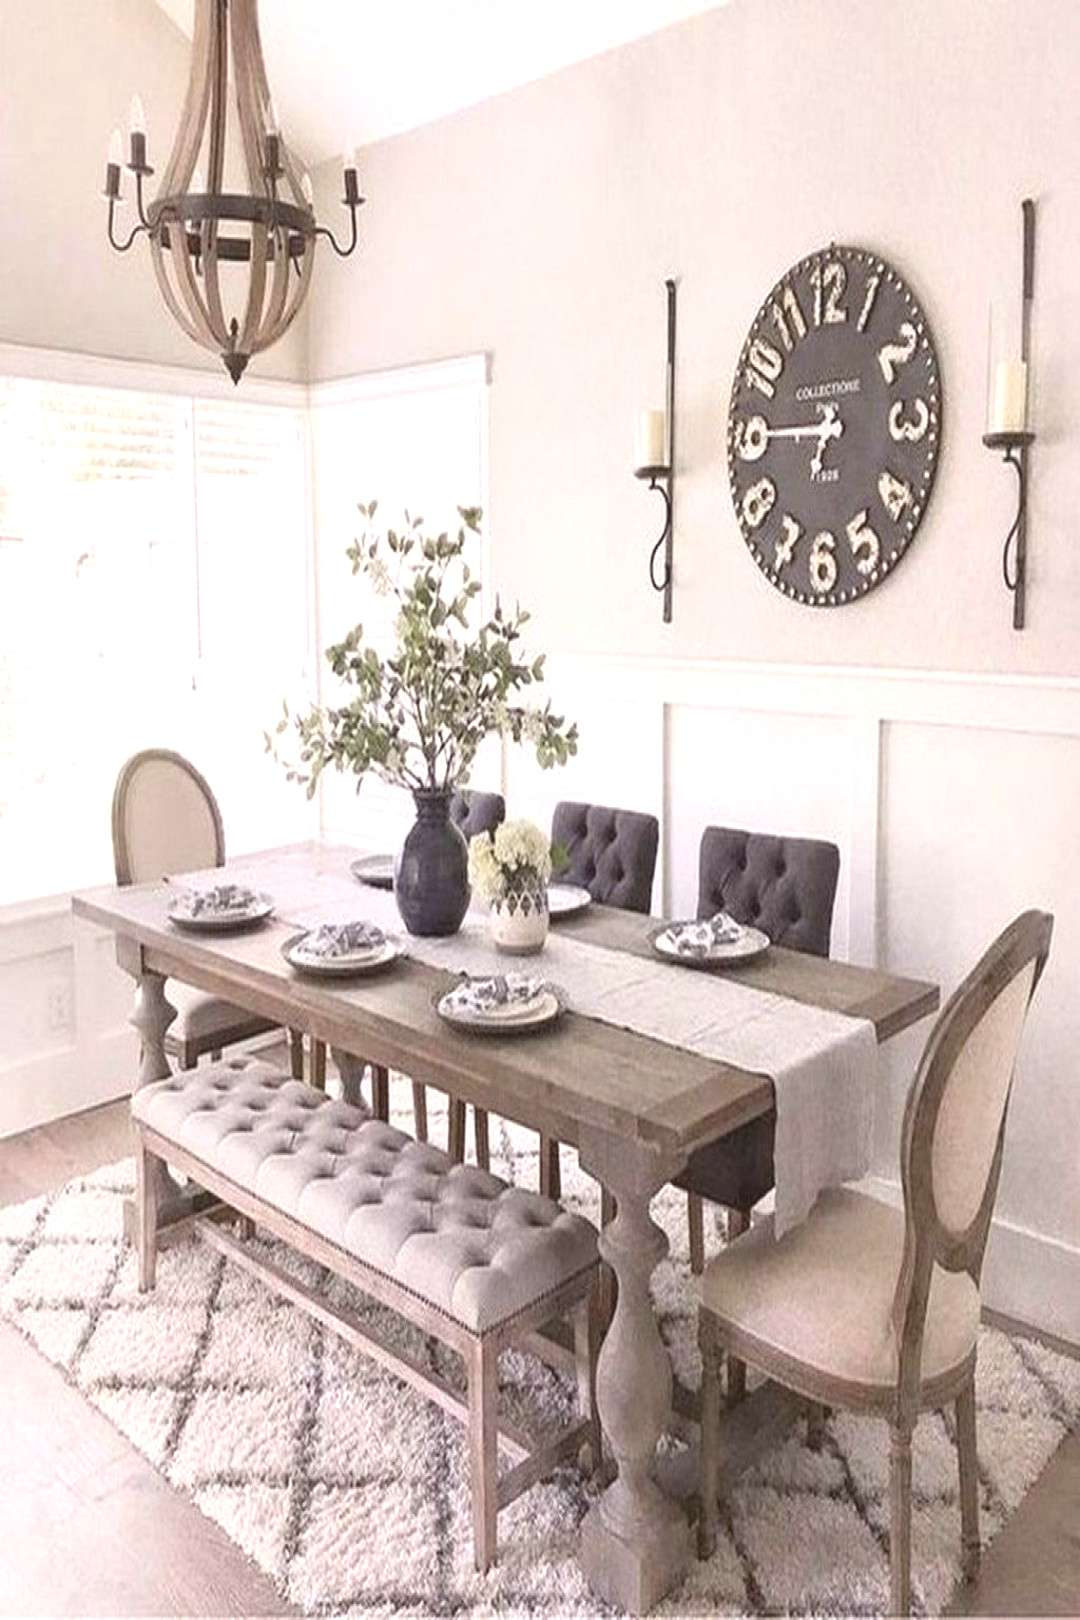 33 Popular Dining Room Makeover Ideas You Have To Try 33 Popular Dining Room Makeover Ideas You Hav